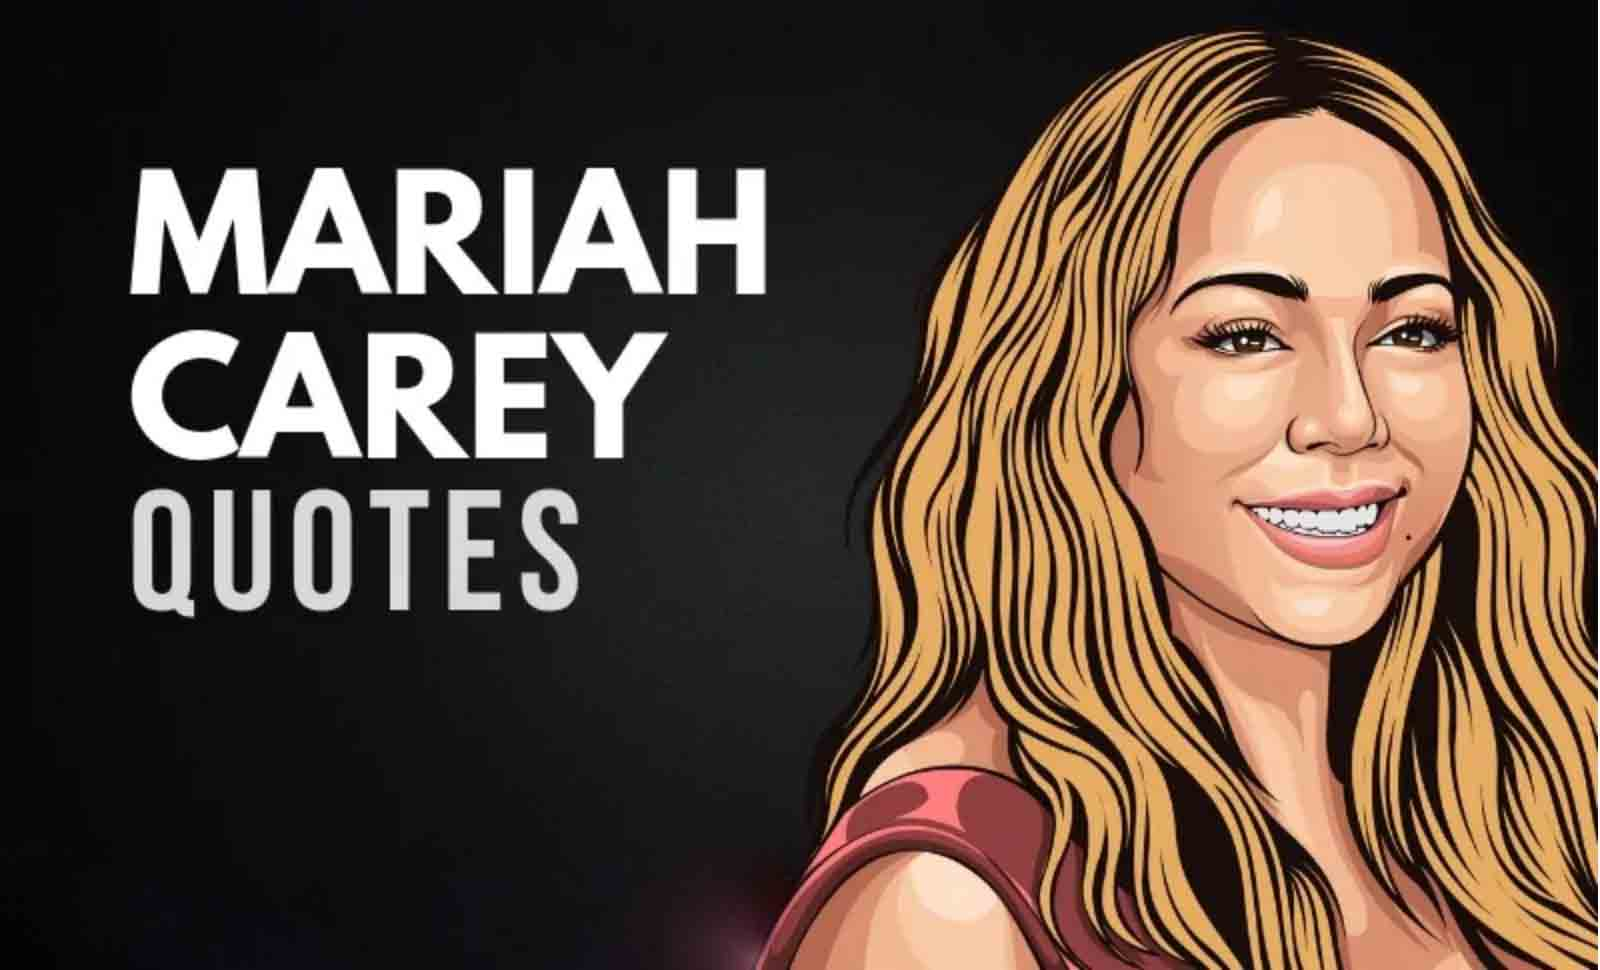 Mariah Carey Quotes